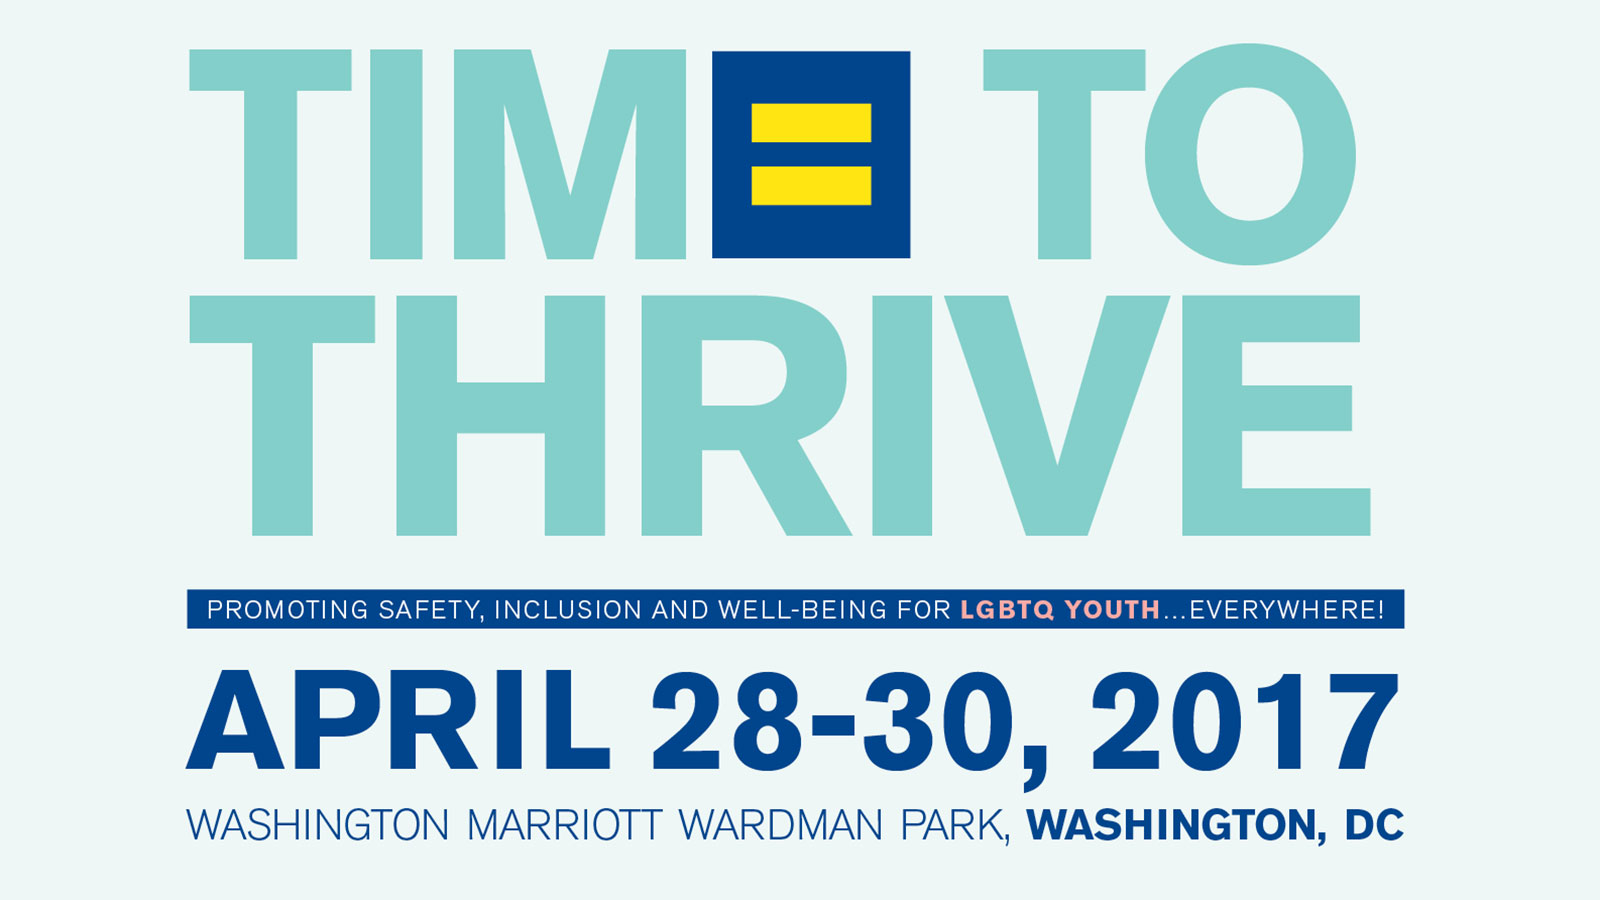 HRC's Groundbreaking Conference Supporting LGBTQ Youth to Be Held April 28-30 in Washington, D.C.